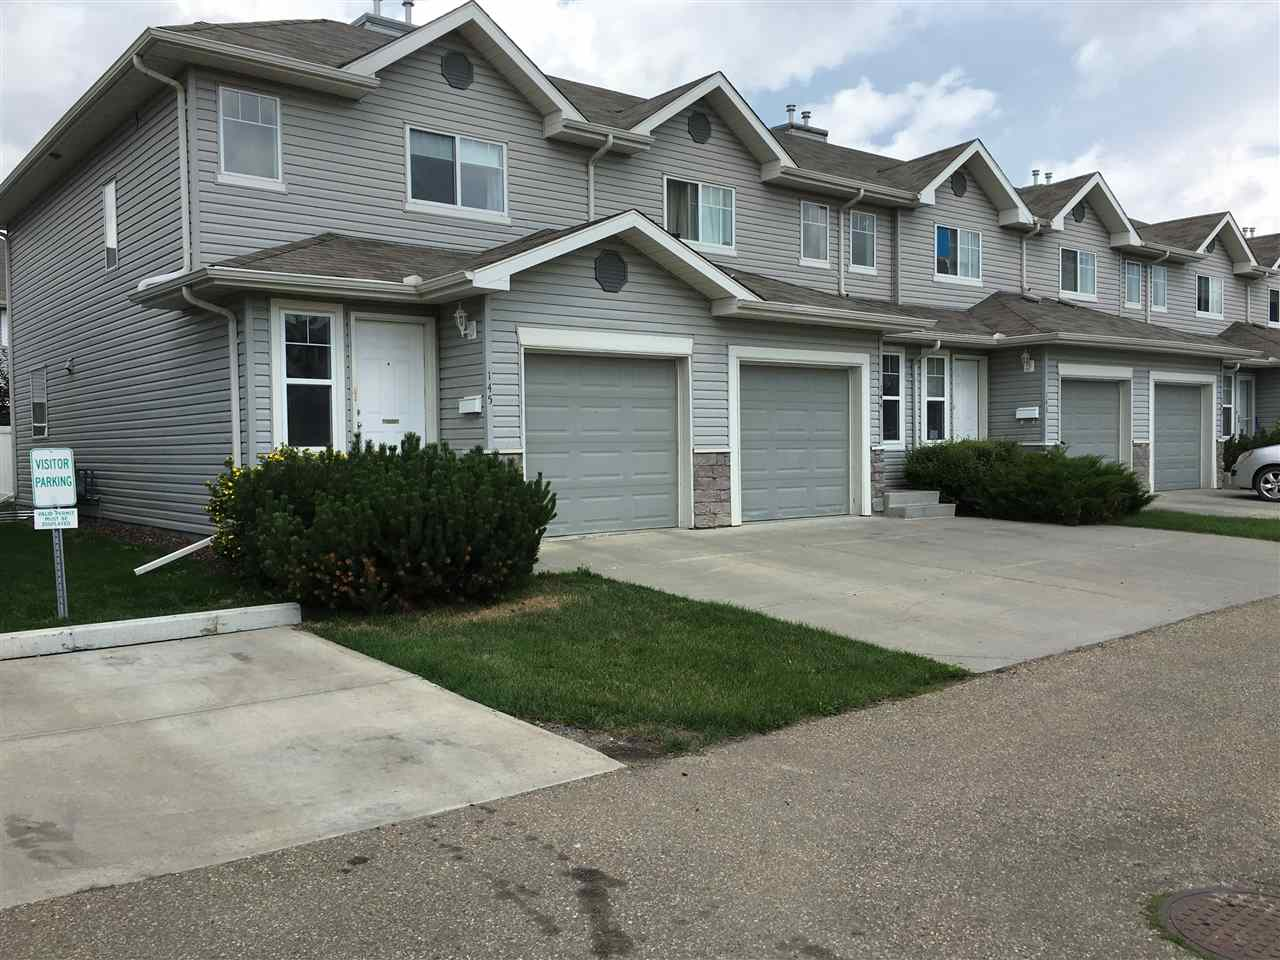 Photo 26: 144 230 EDWARDS Drive in Edmonton: Zone 53 Townhouse for sale : MLS® # E4067776